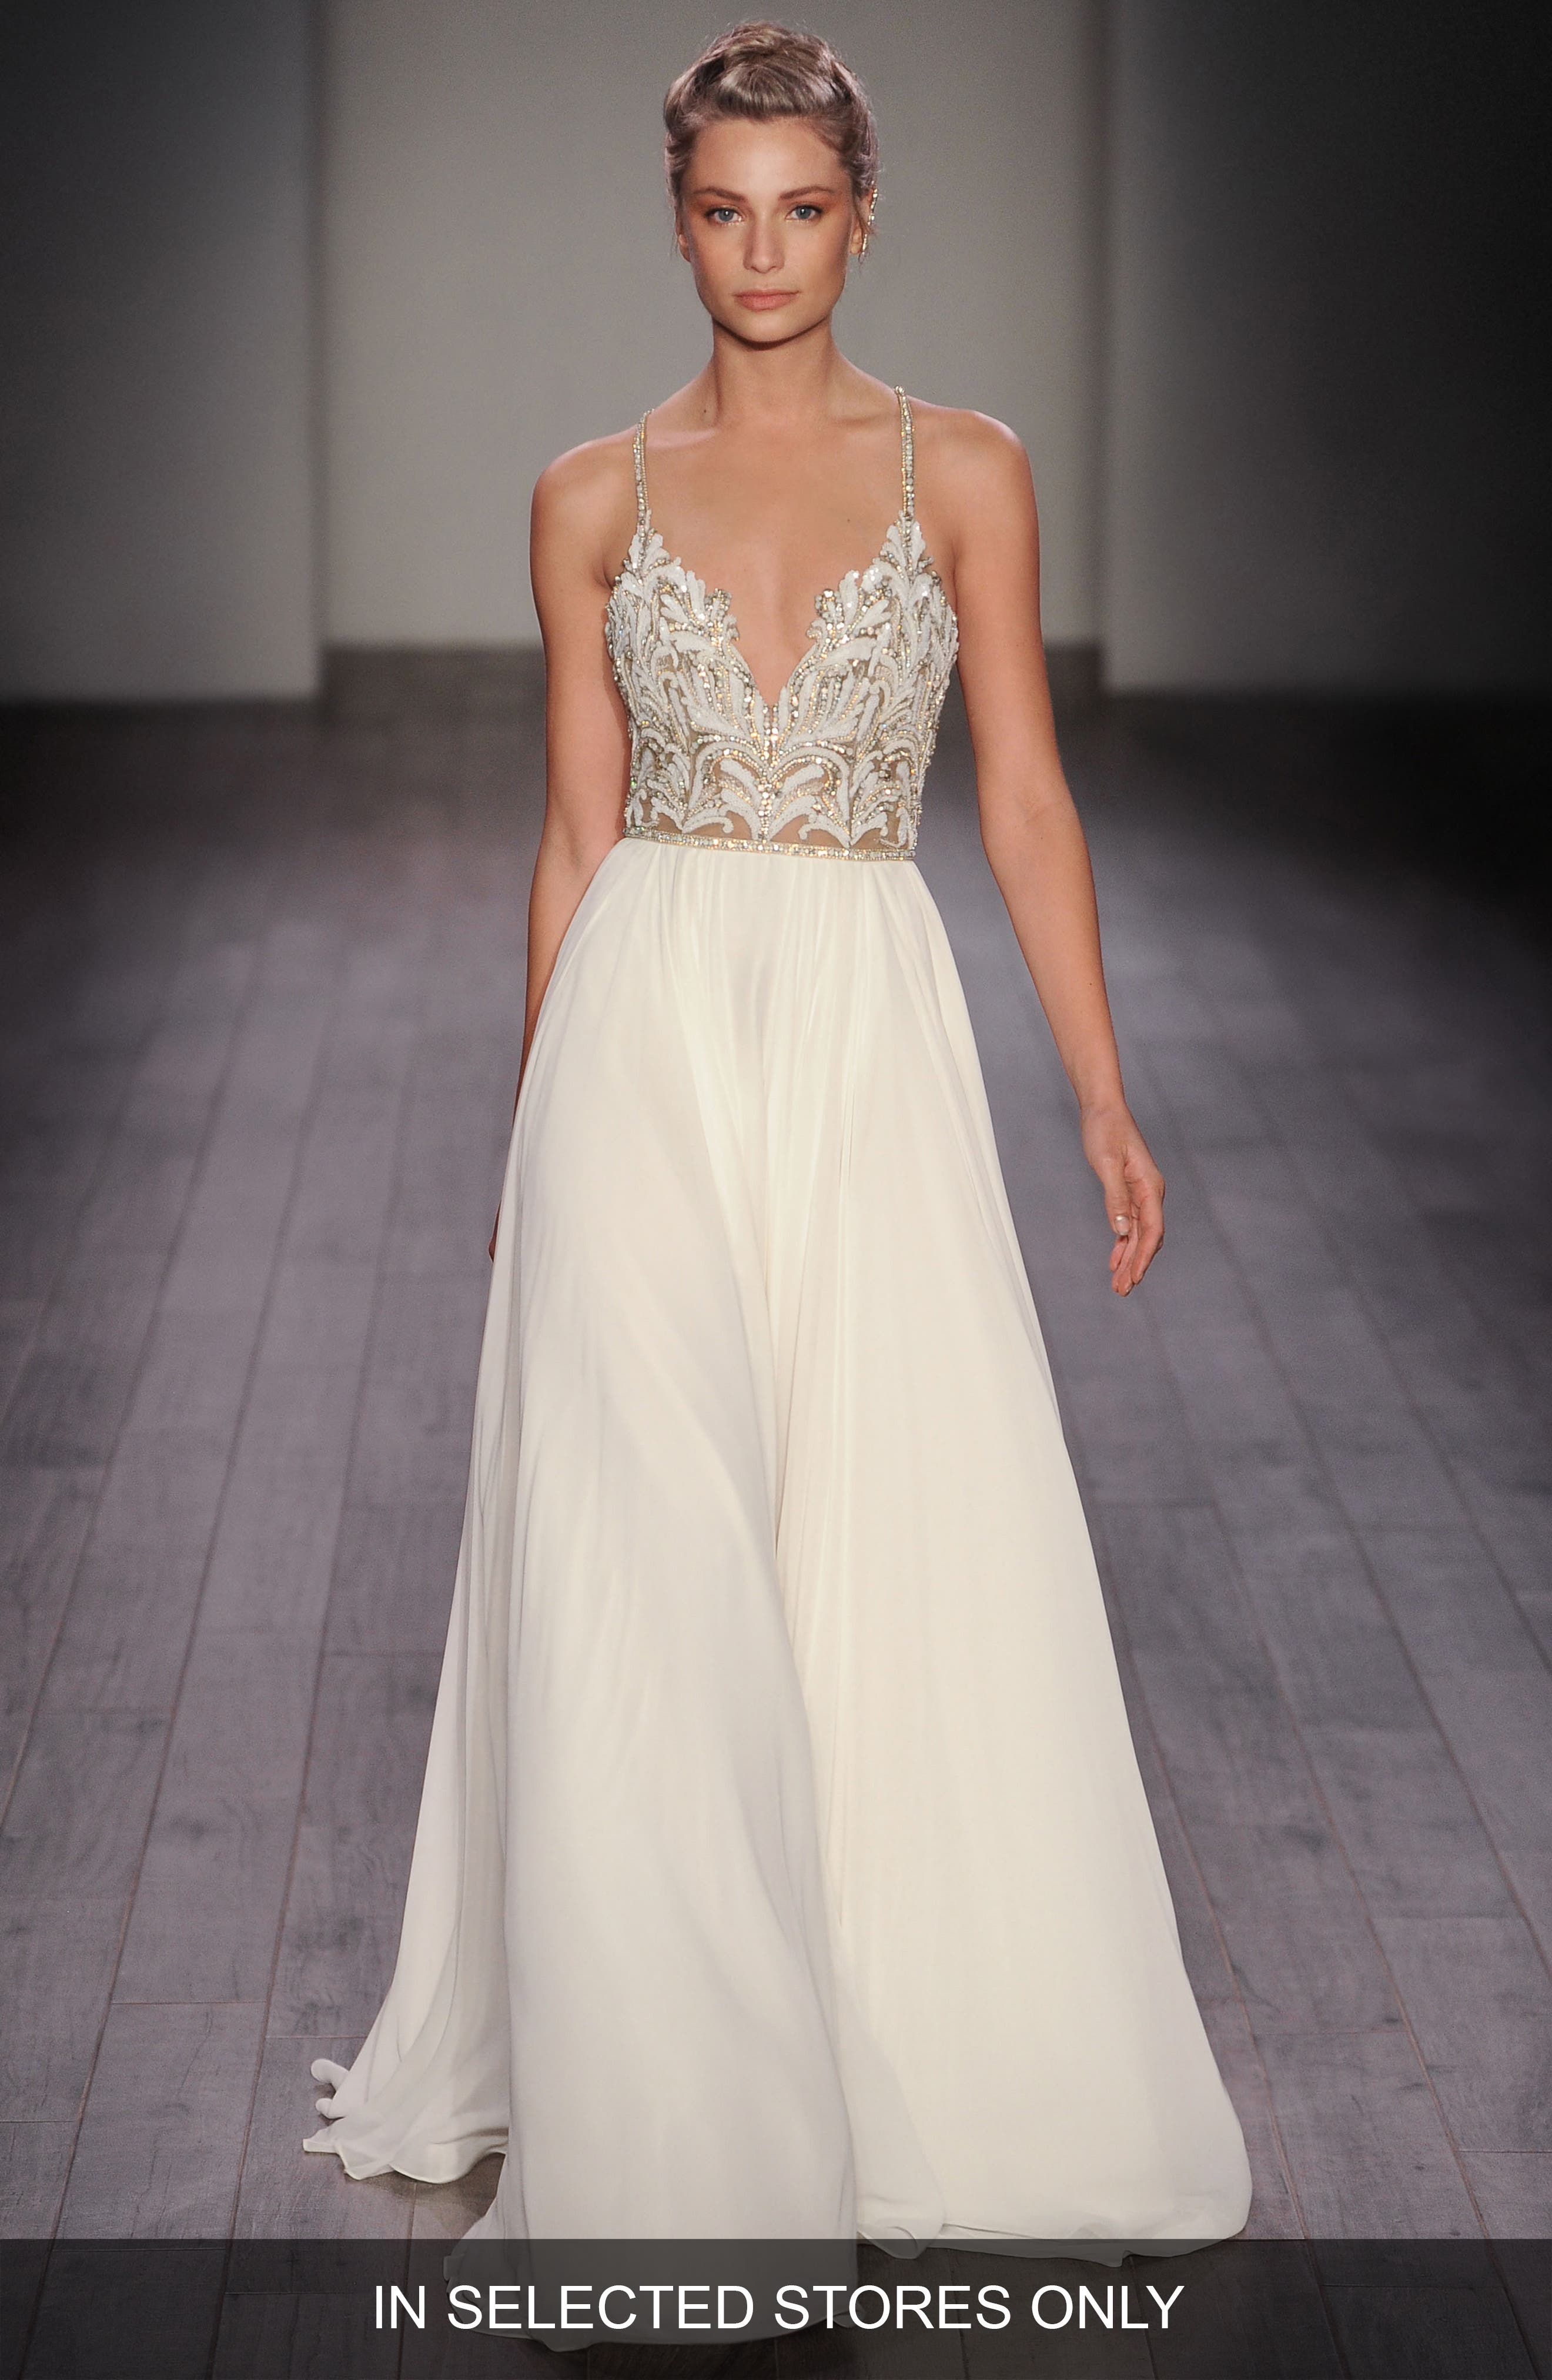 Hayley Paige 'Teresa' T-Strap Back Embellished Chiffon A-Line Gown (In Stores Only)